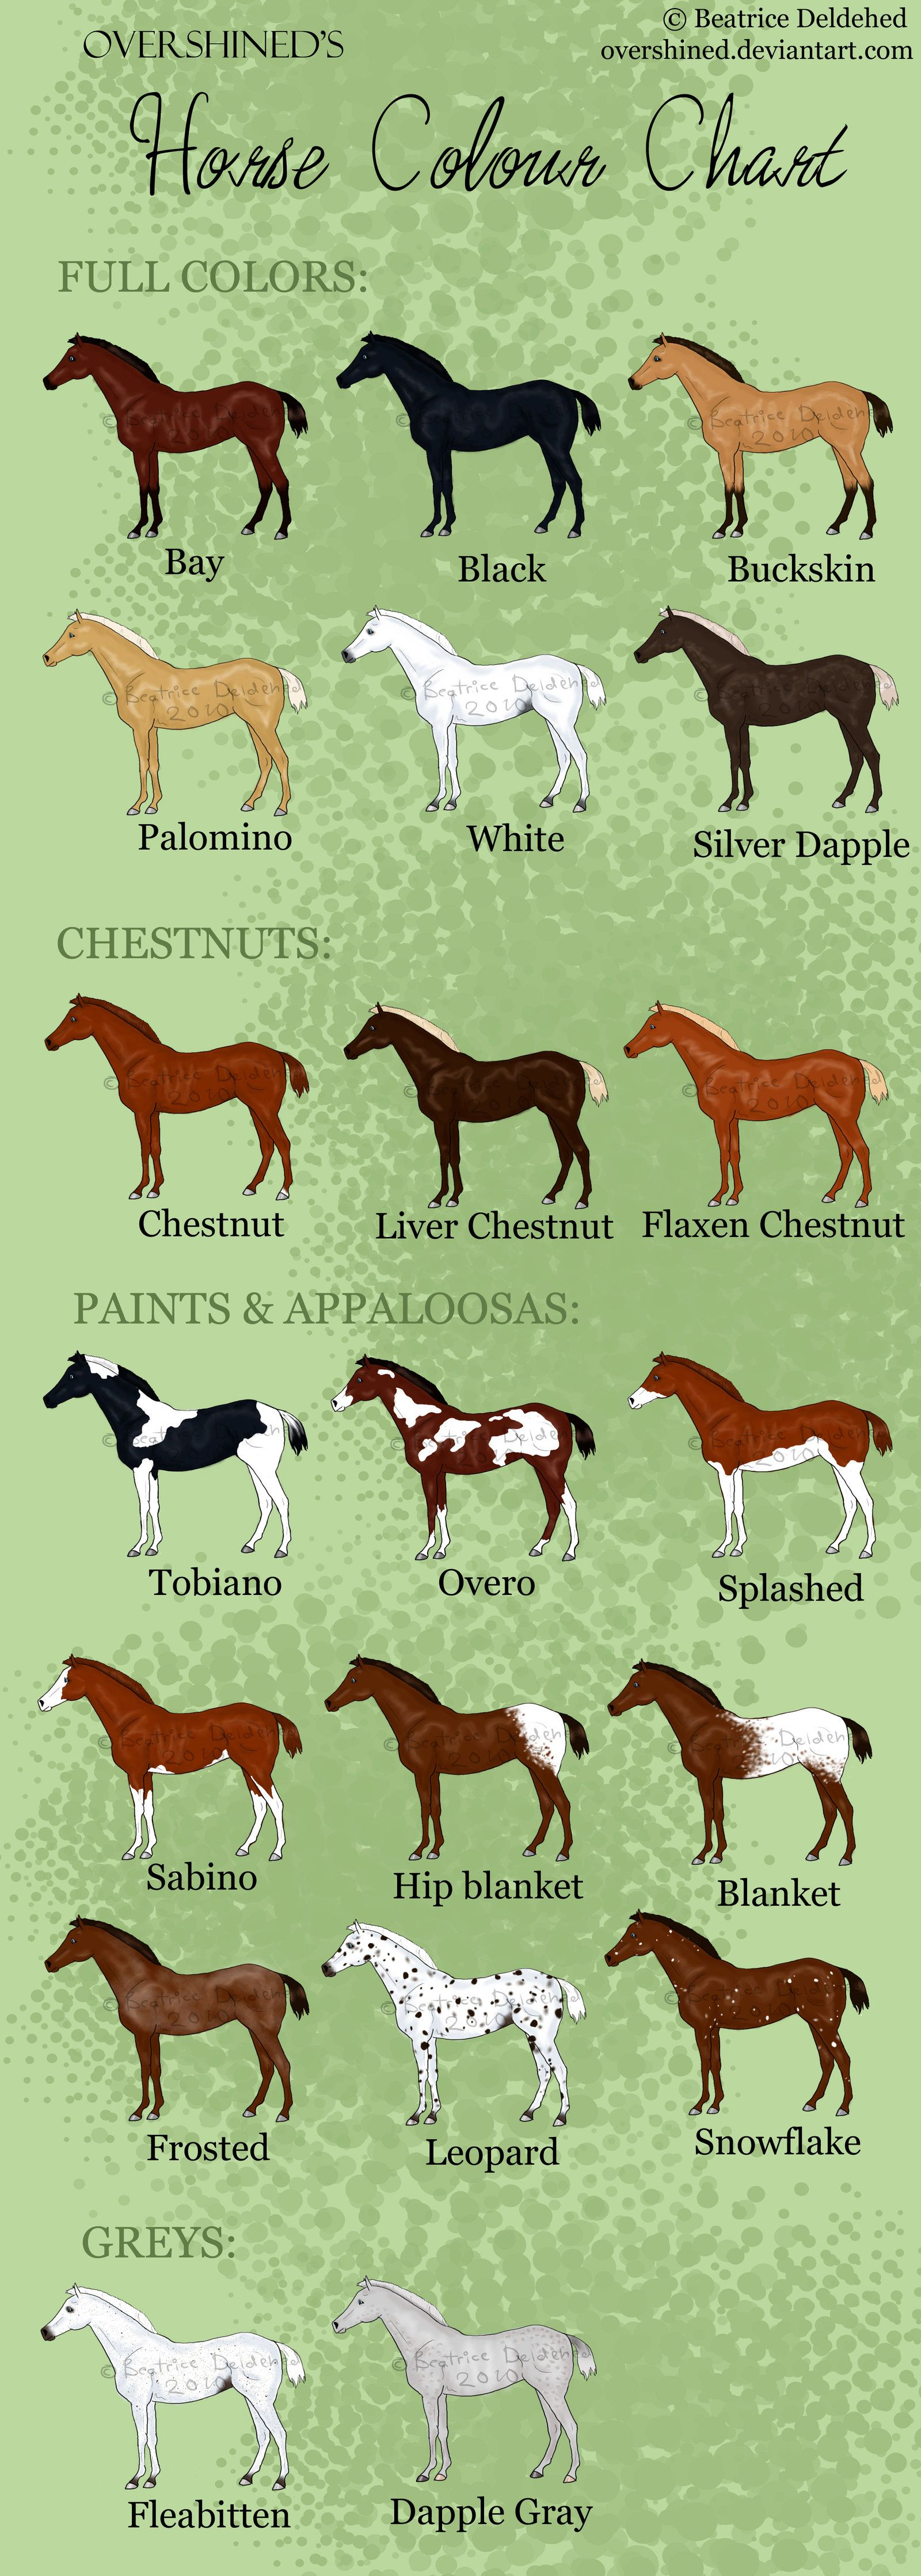 Horse Colour Chart Horse Color Chart Horse Coloring Horse Breeds